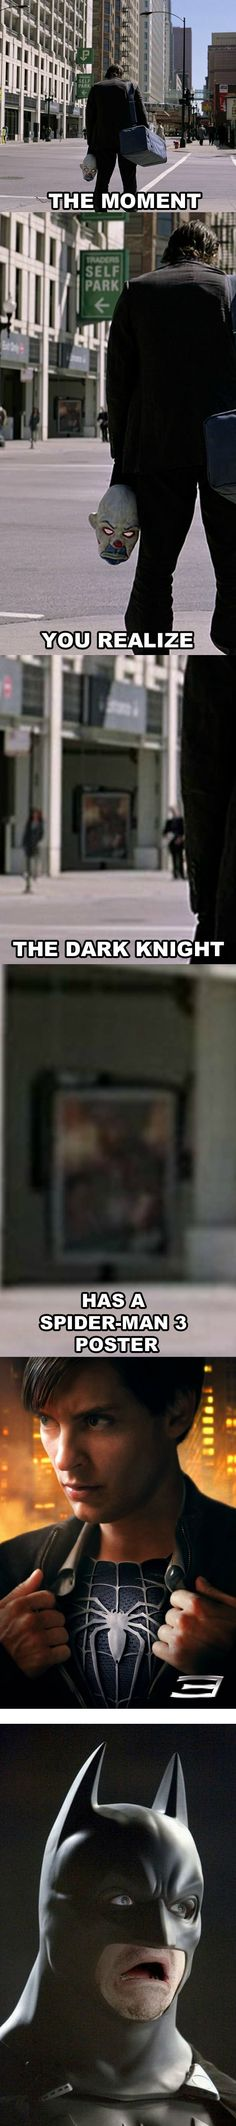 The Moment Your Realize The Dark Knight Has A Spiderman 3 Poster | WeKnowMemes